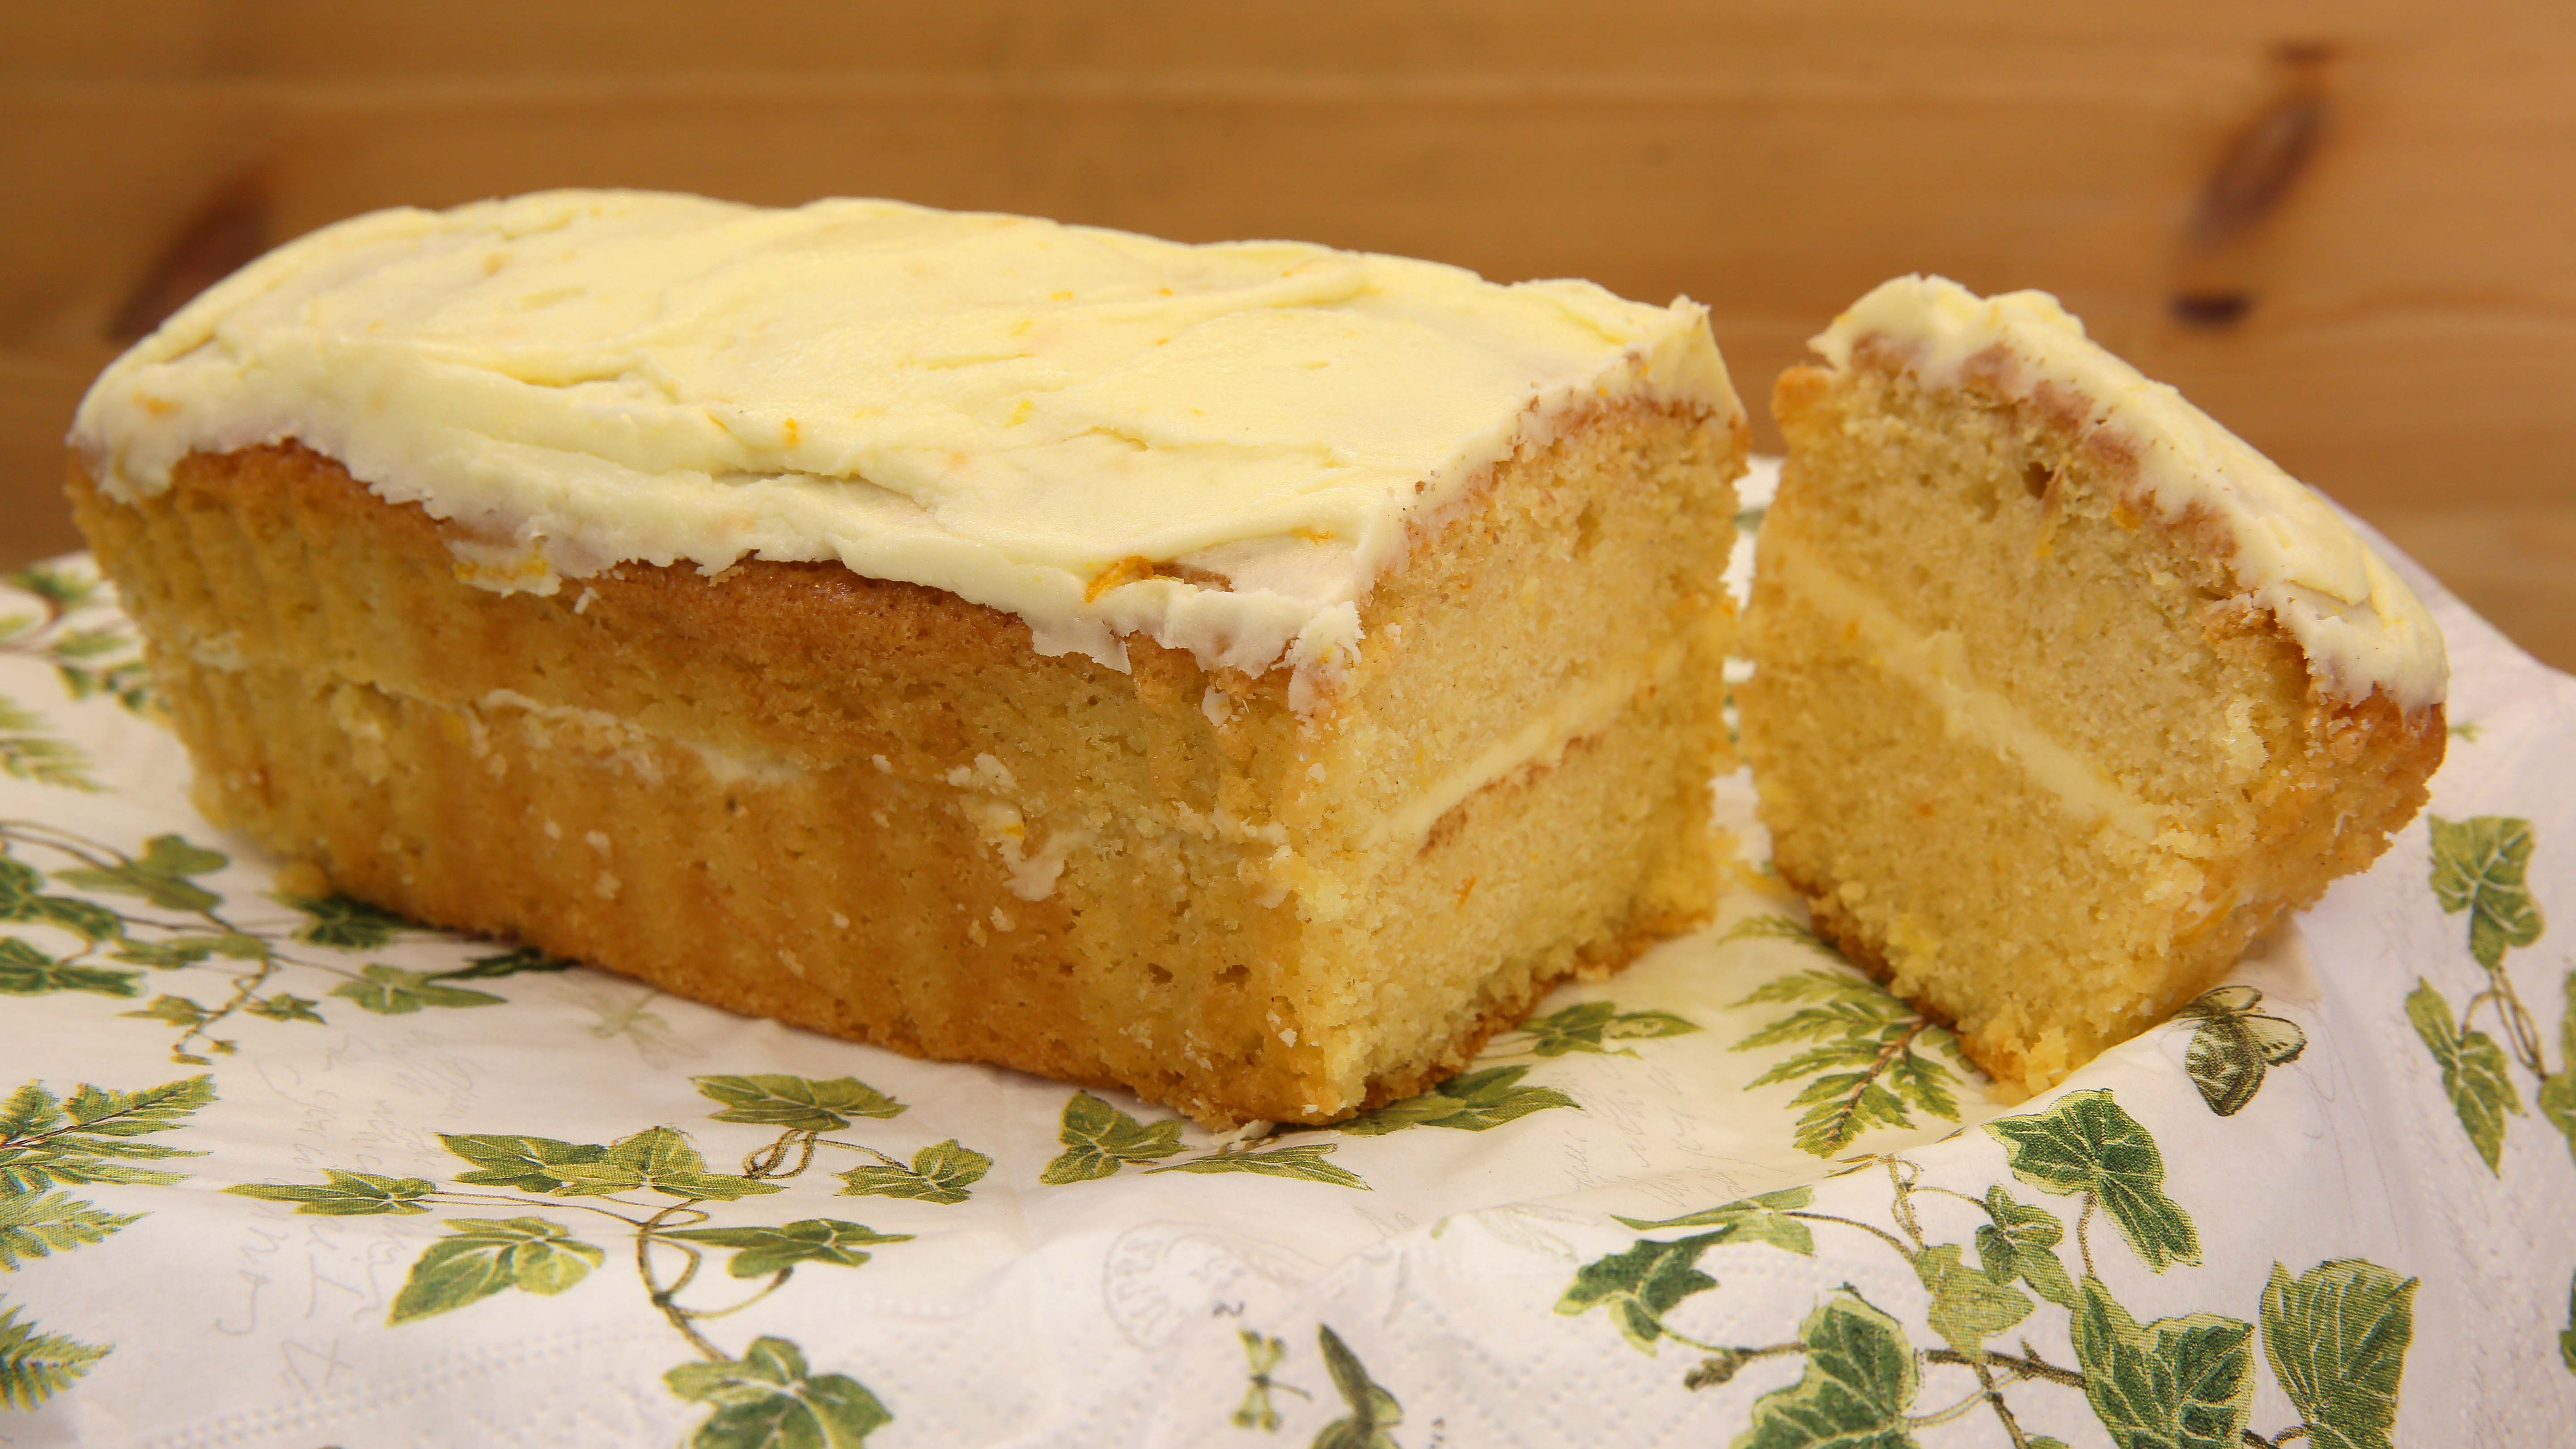 Orange and Lemon Loaf